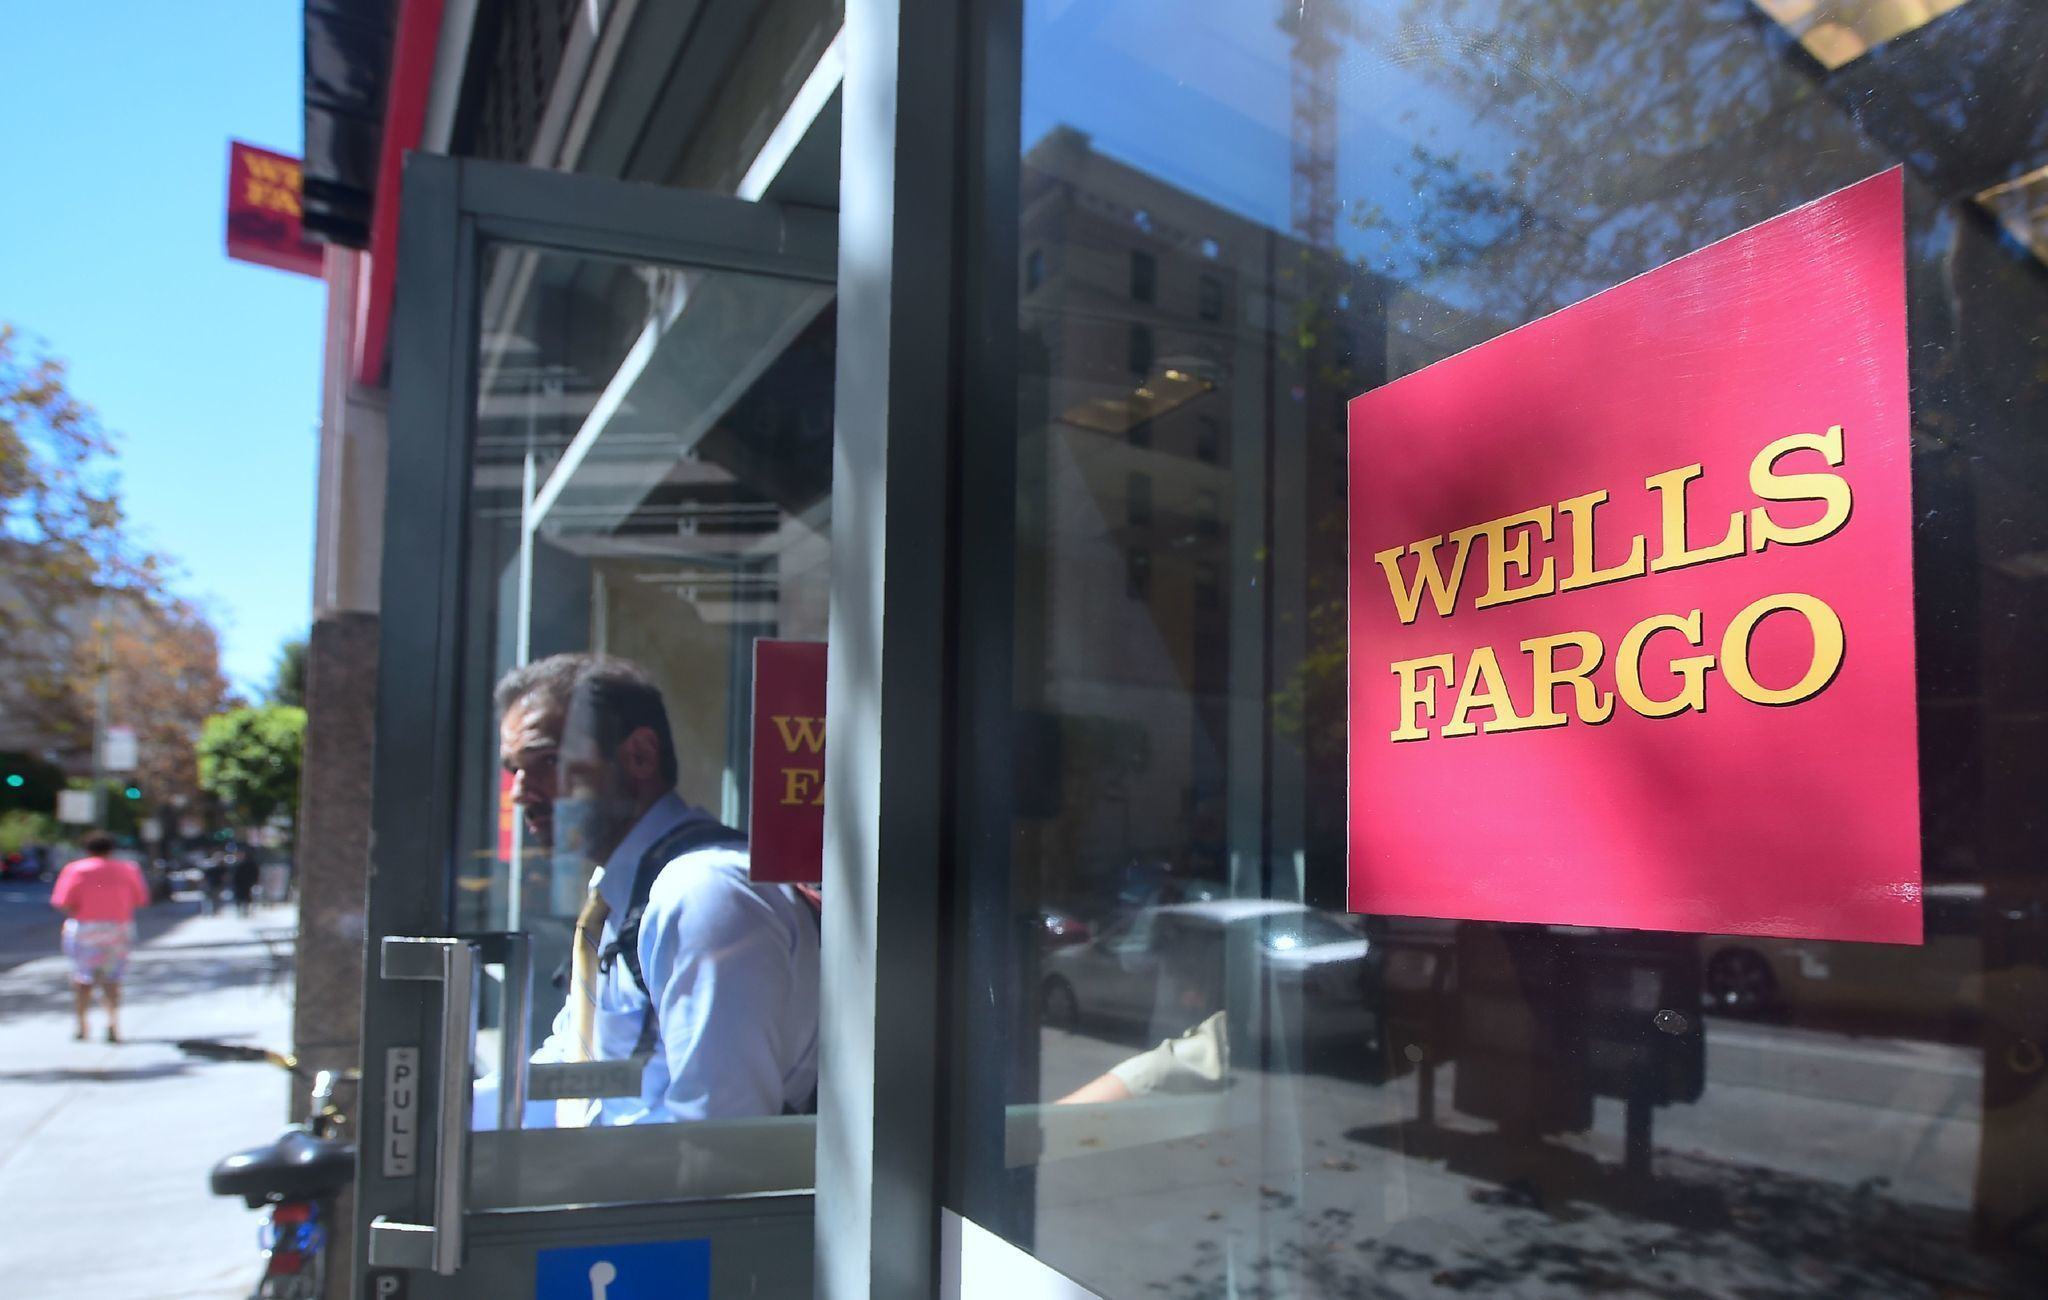 Wells Fargo customers harmed by fake accounts would get to sue under proposed legislation